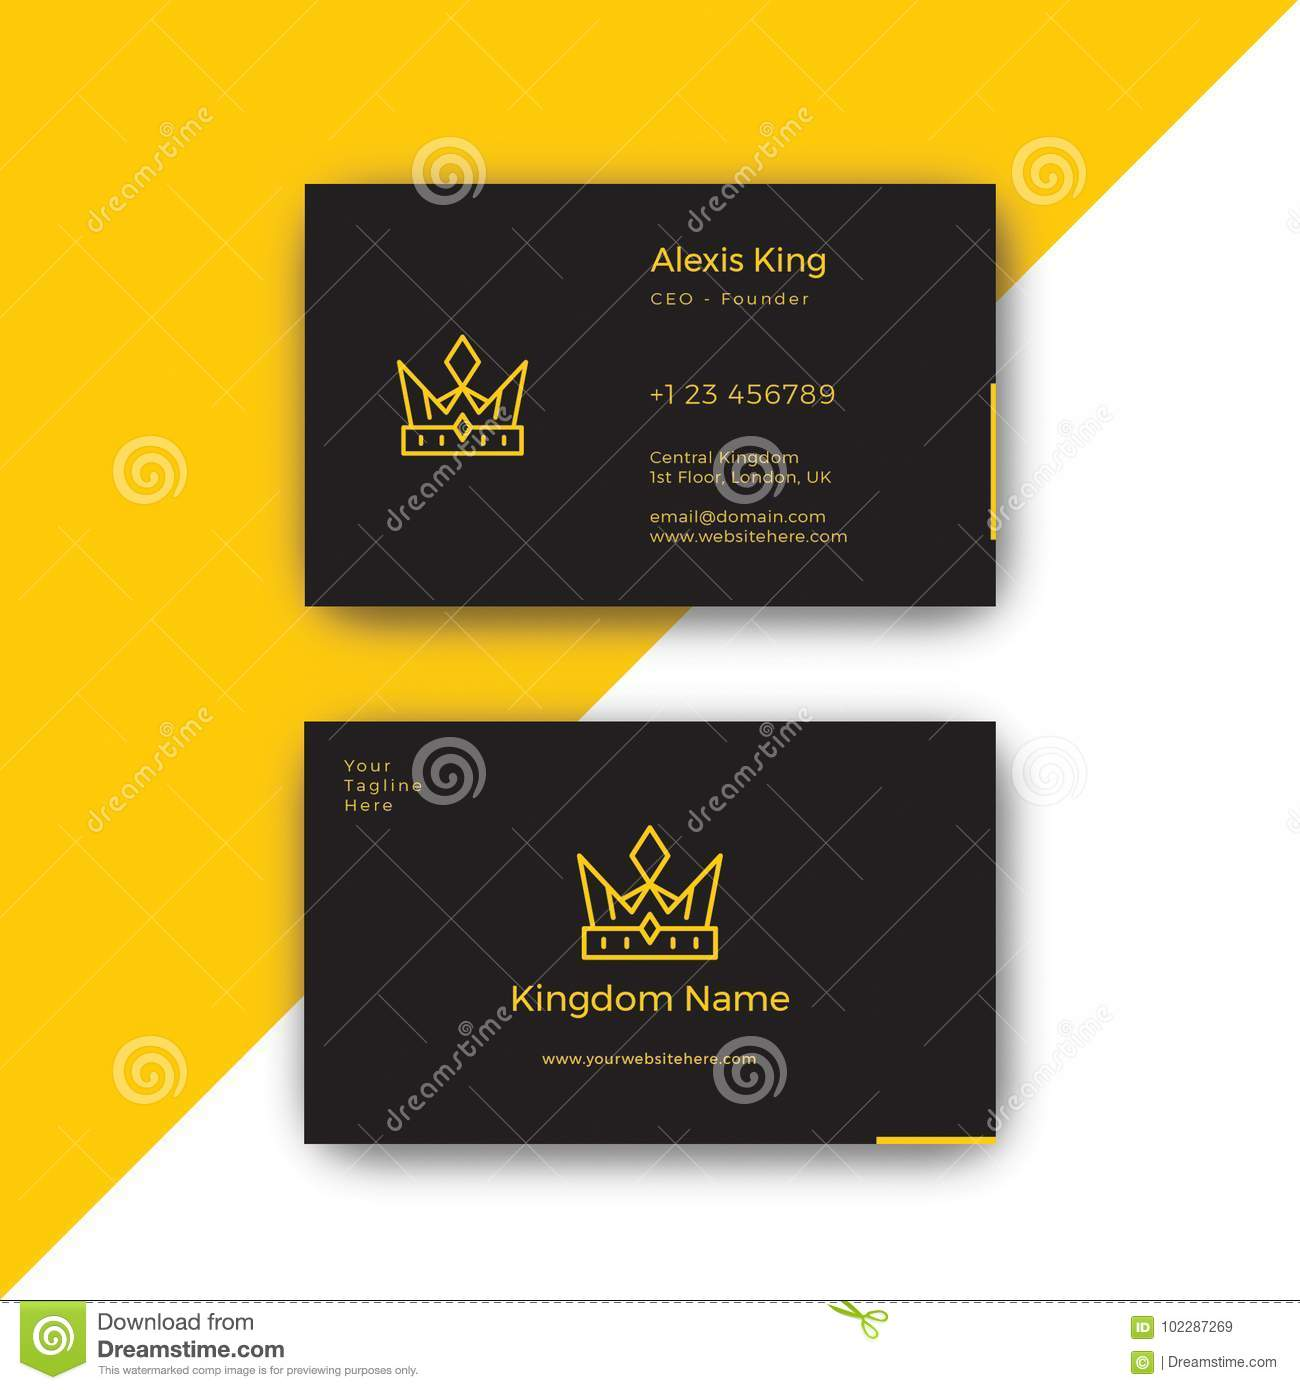 King luxury black business card design template stock vector download comp colourmoves